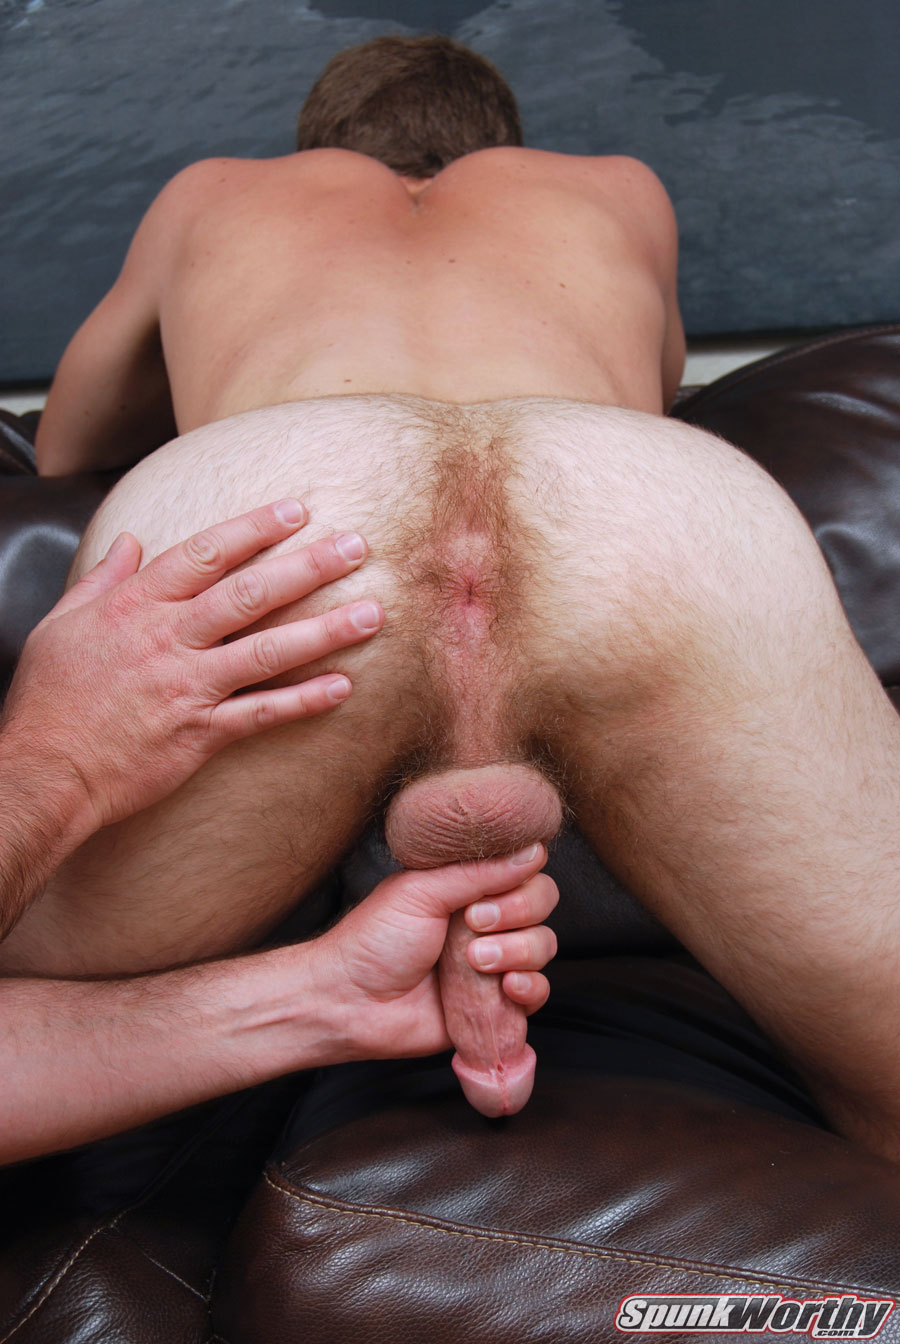 Spunkworthy Wes torrent gay straight blowjob 06 Hairy Straight College Jock Gets His Cock Sucked By A Dude For The First Time